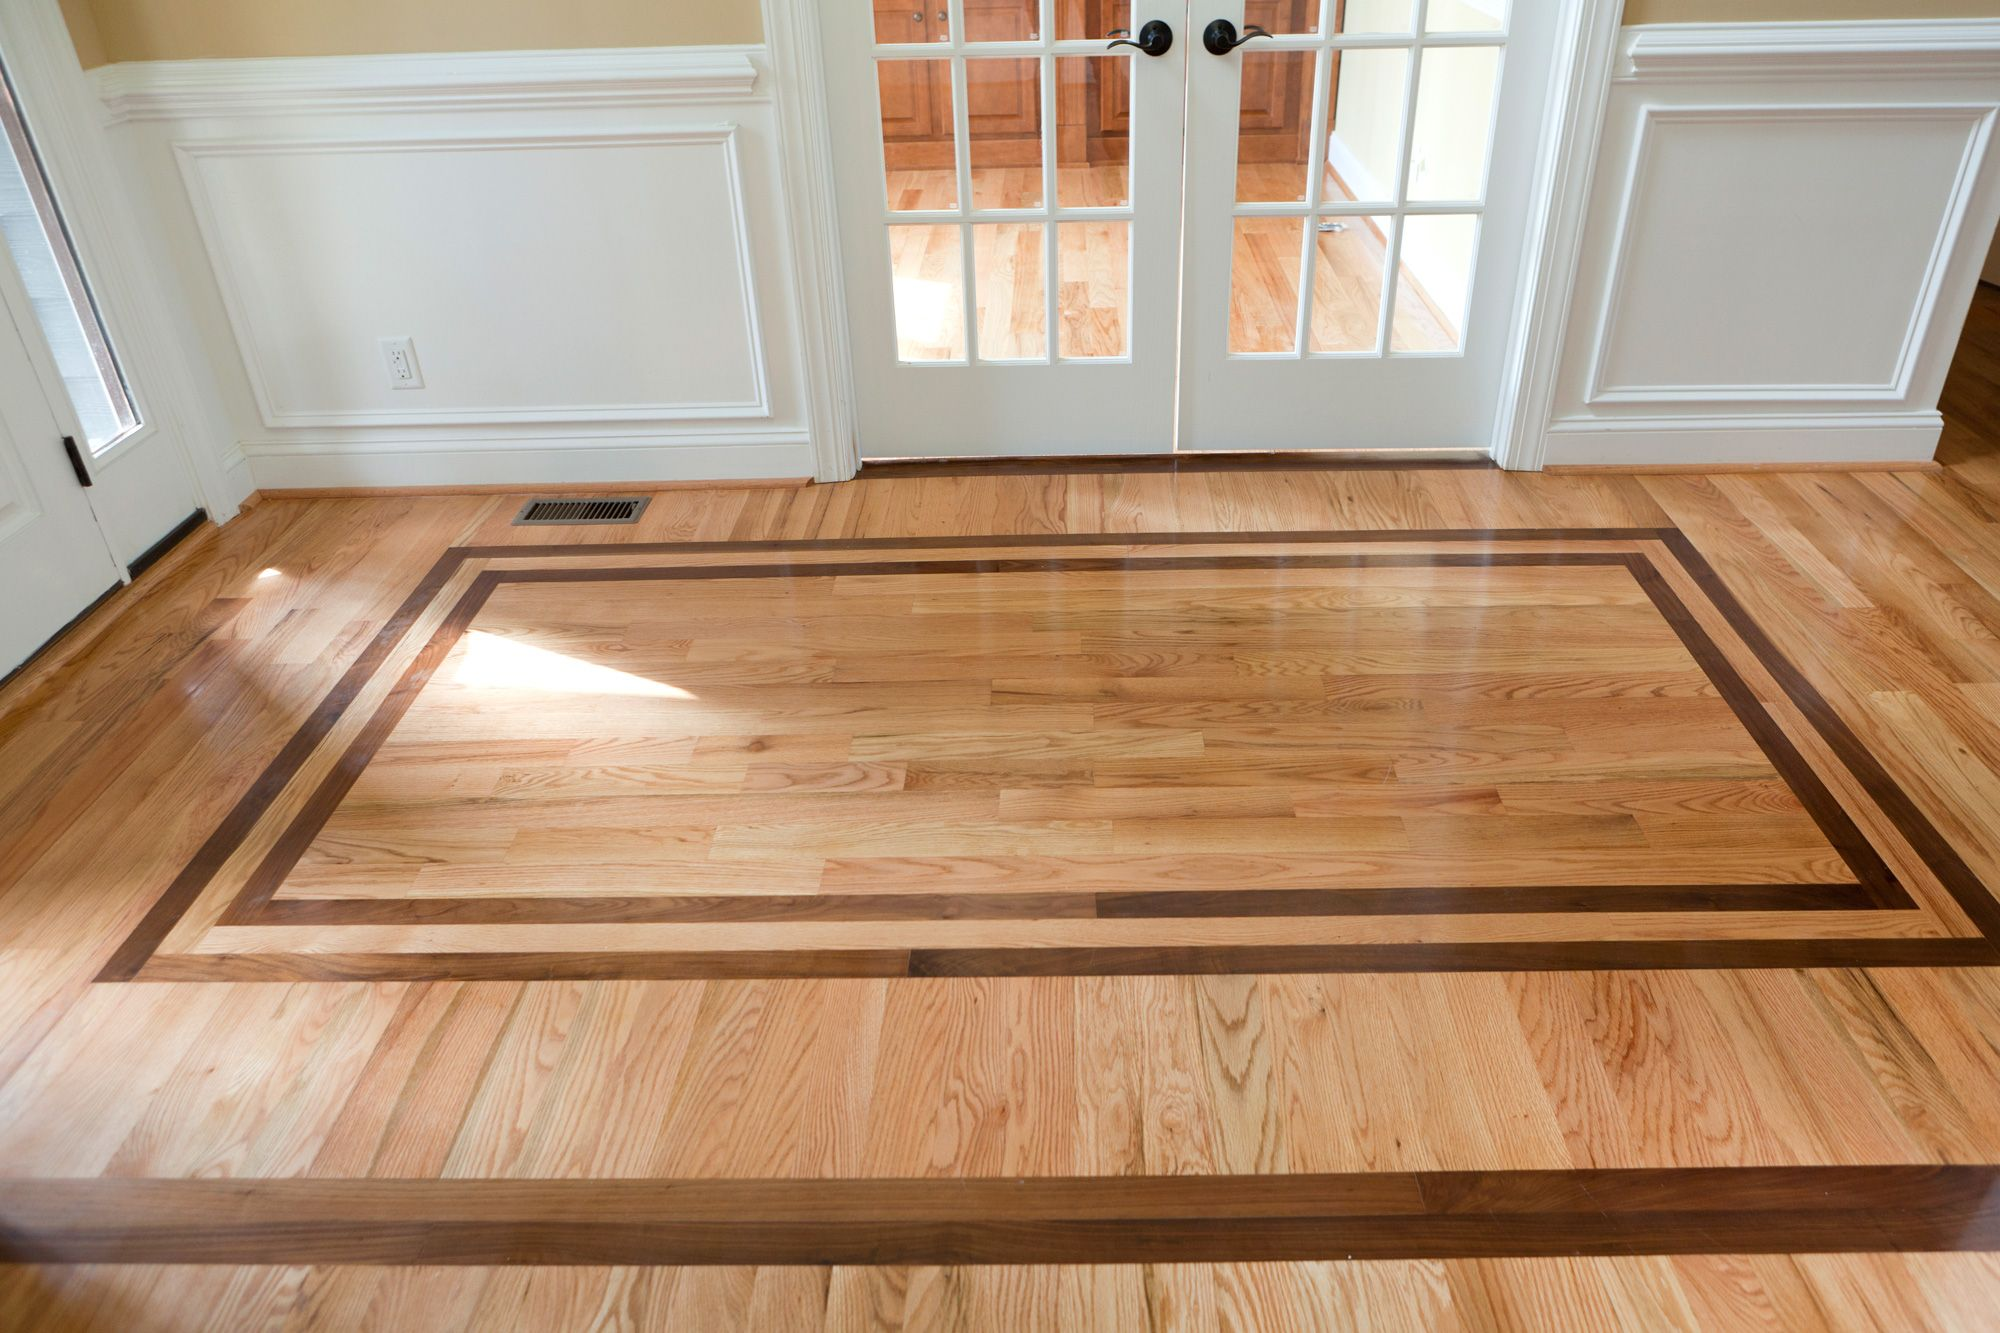 Hardwood Floor Designs Of Wood Flooring Ideas Wood Floor Ideas For The House